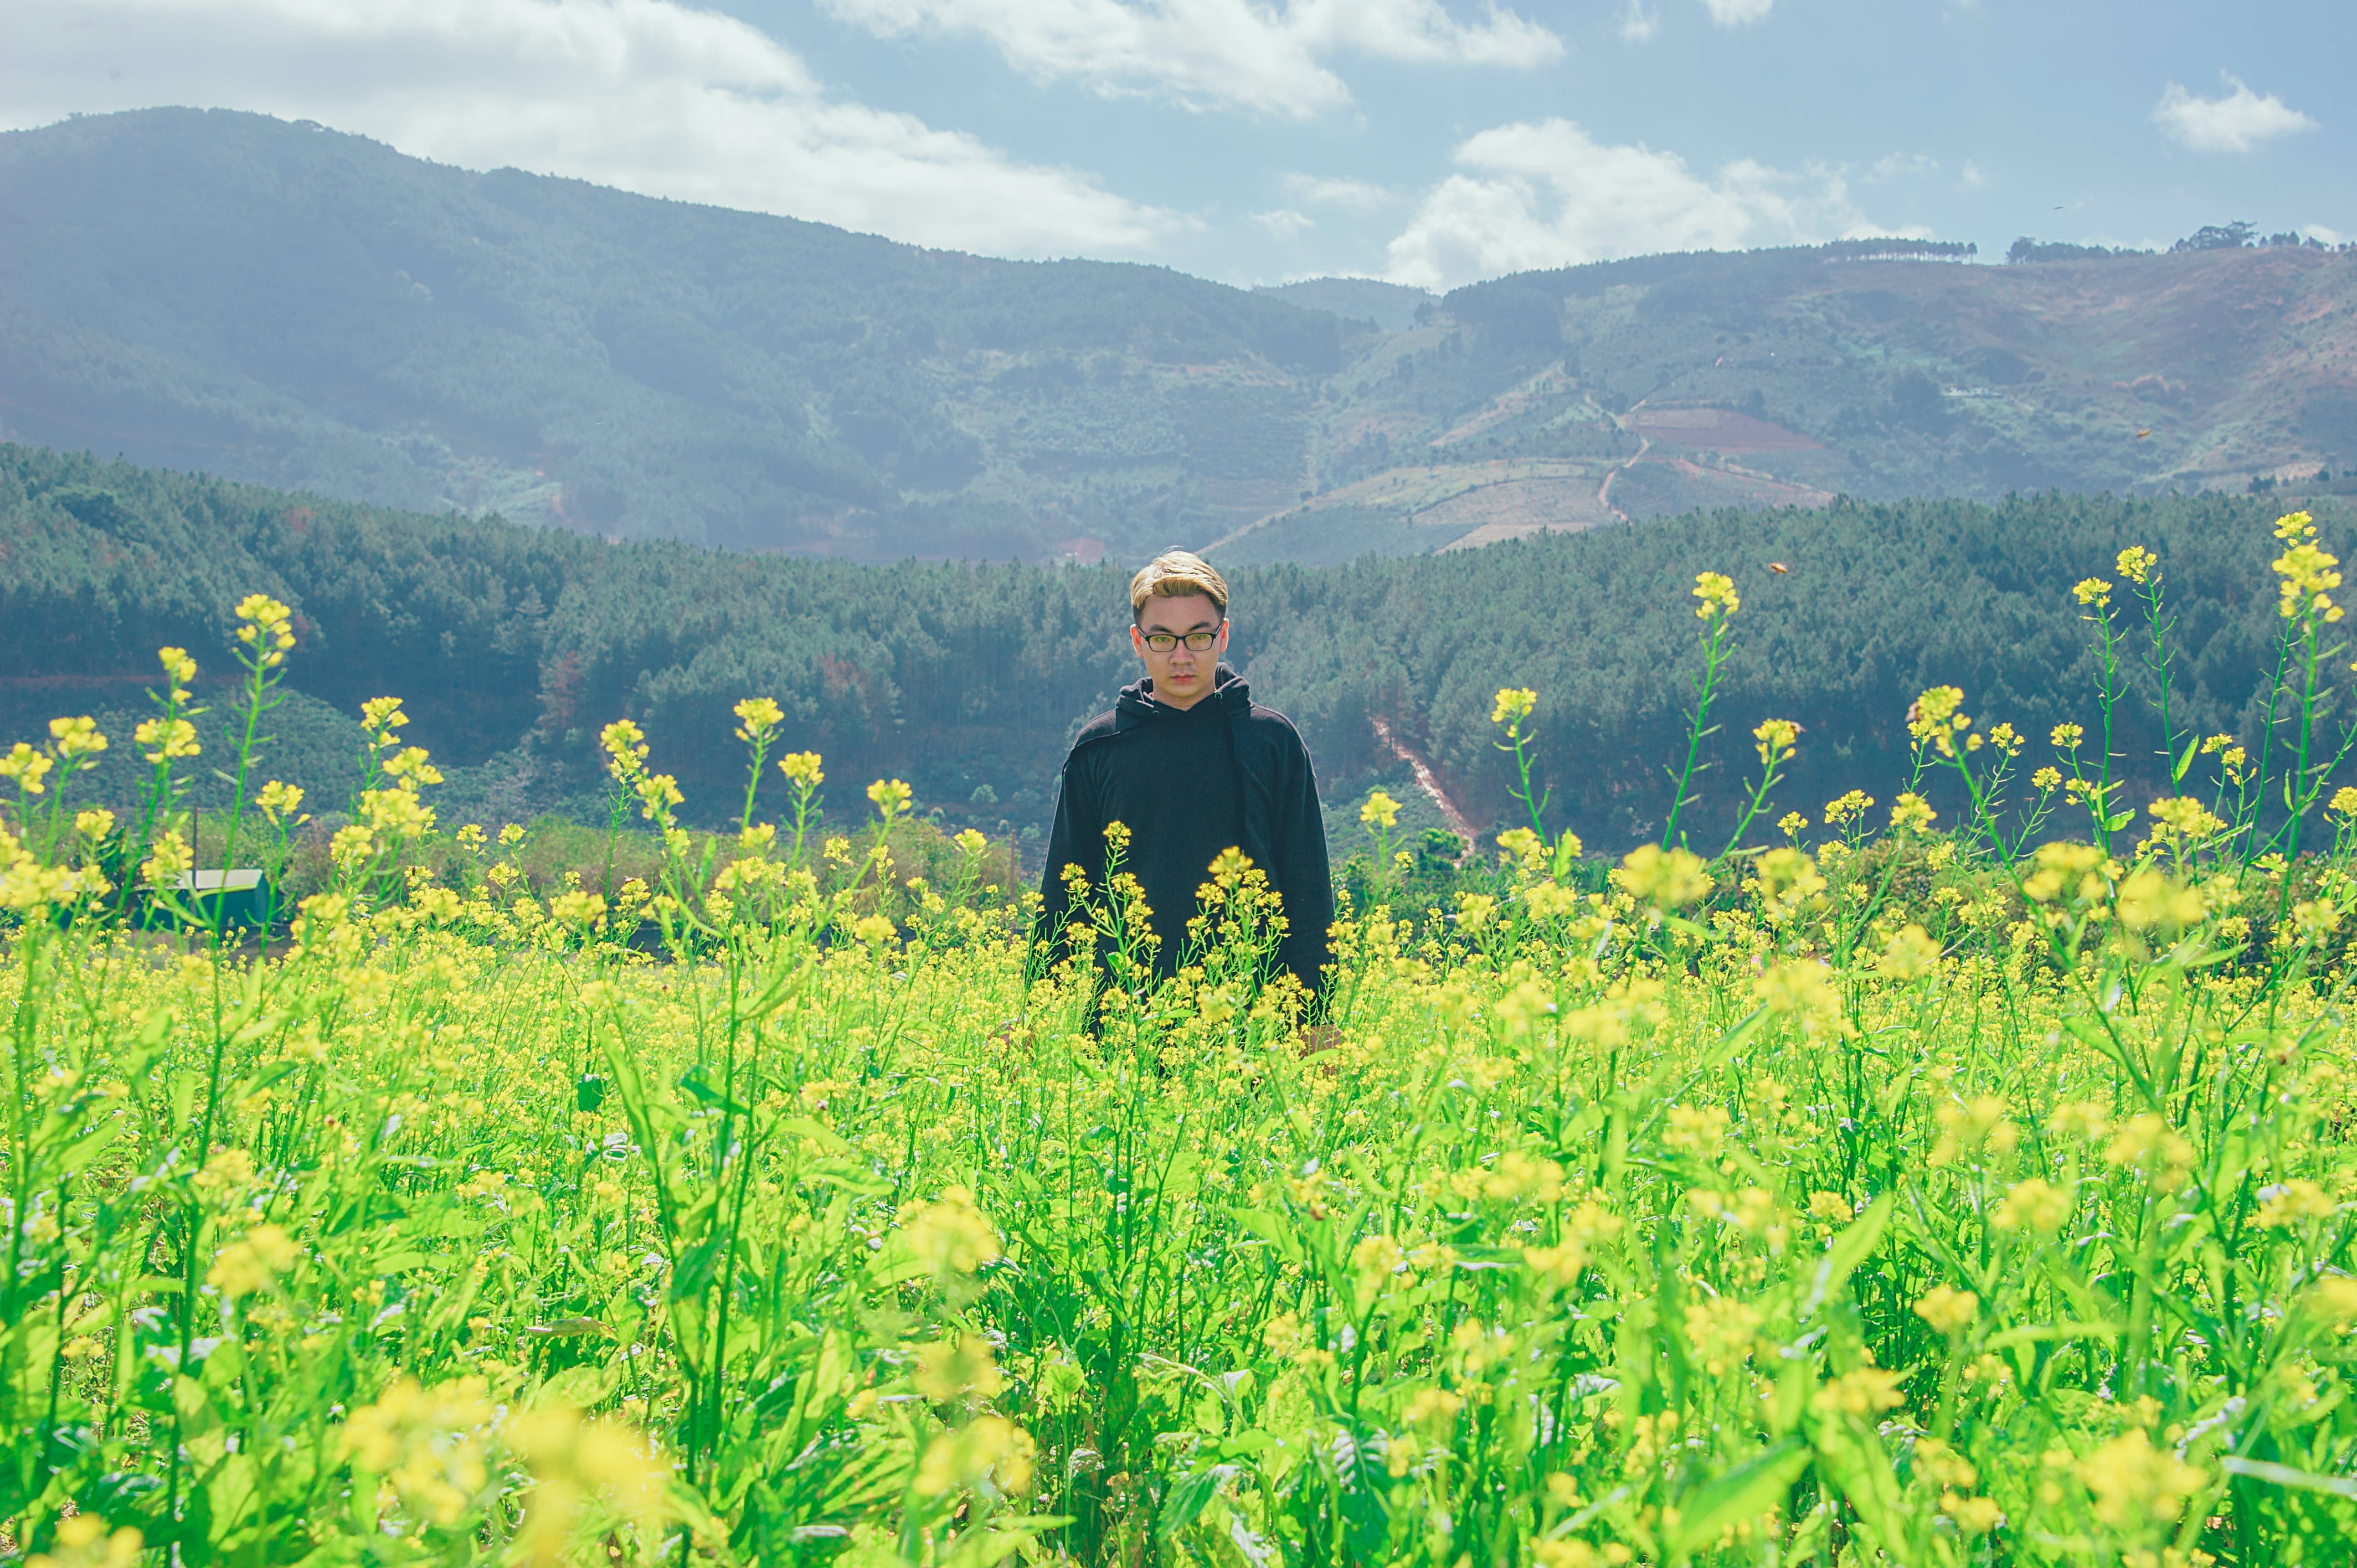 Photography of a Man Surrounded By Flowers